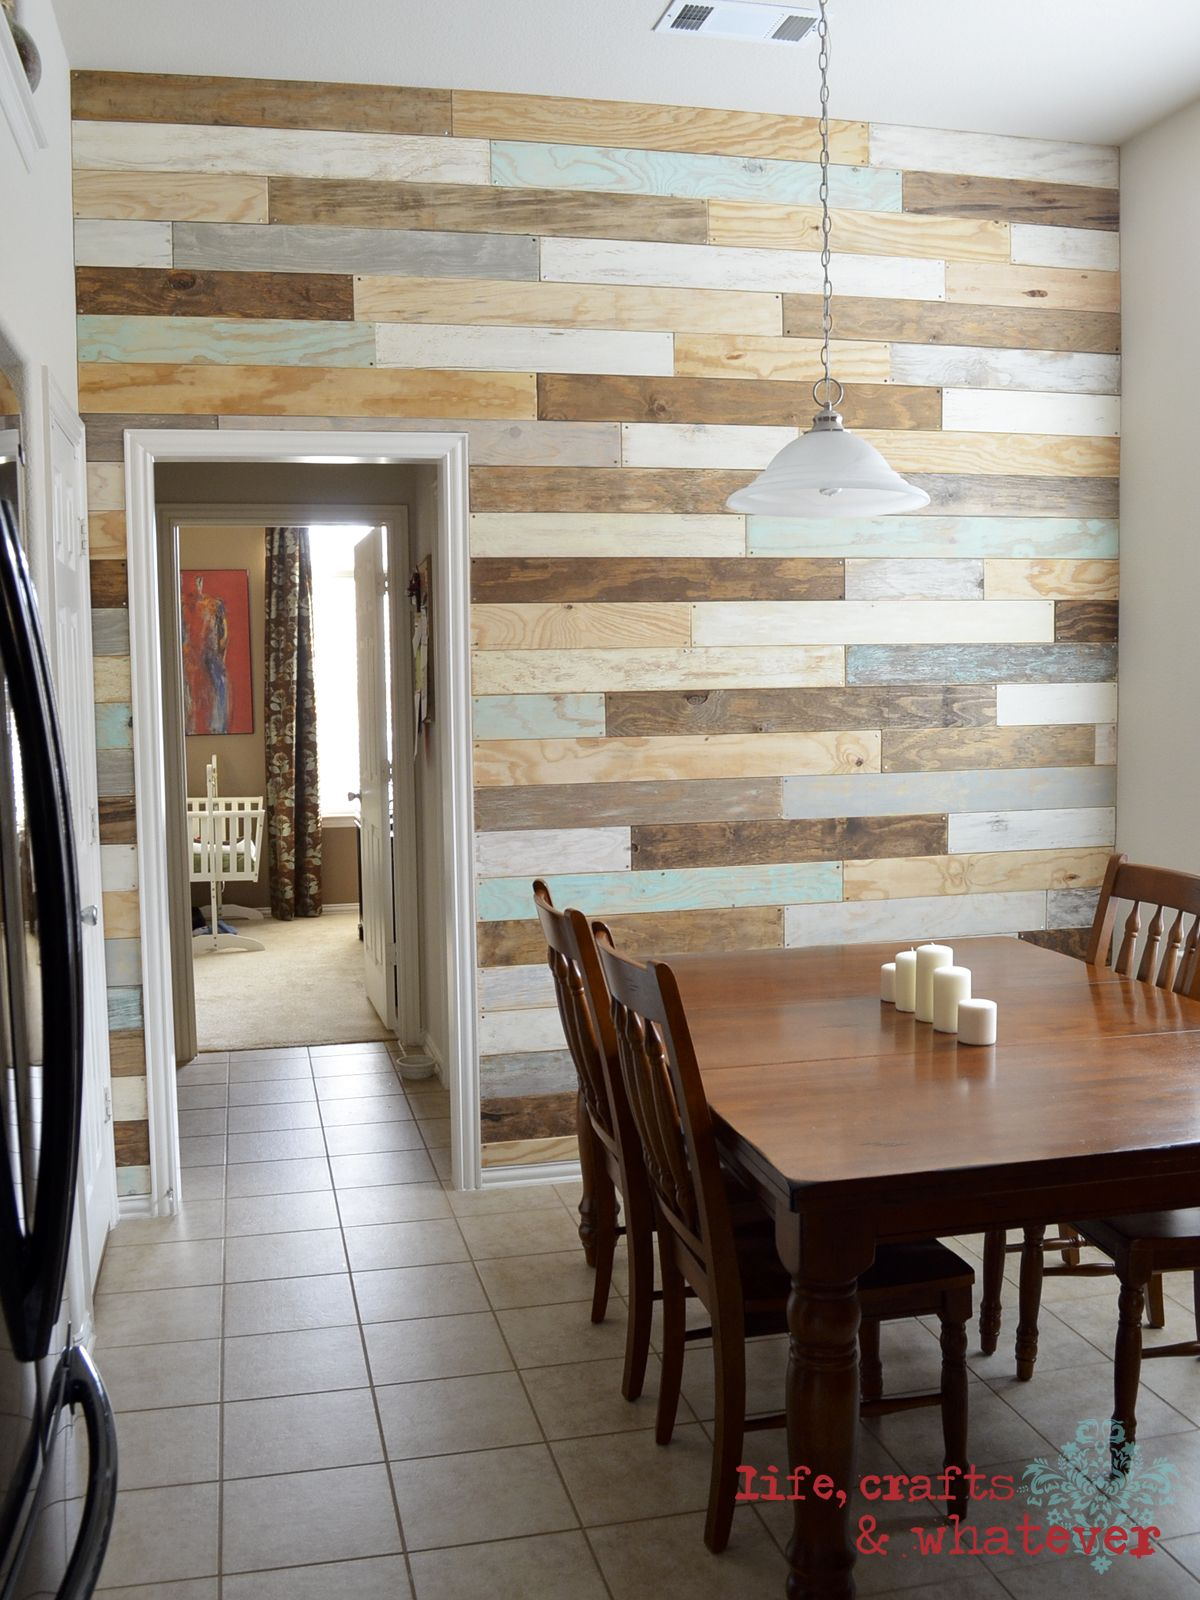 Today I D Like To Pay Your Attention To Wood Accent Walls Which Are Rather Easy To Install Yourself And Will Look Diy Pallet Wall Plank Walls Wood Plank Walls